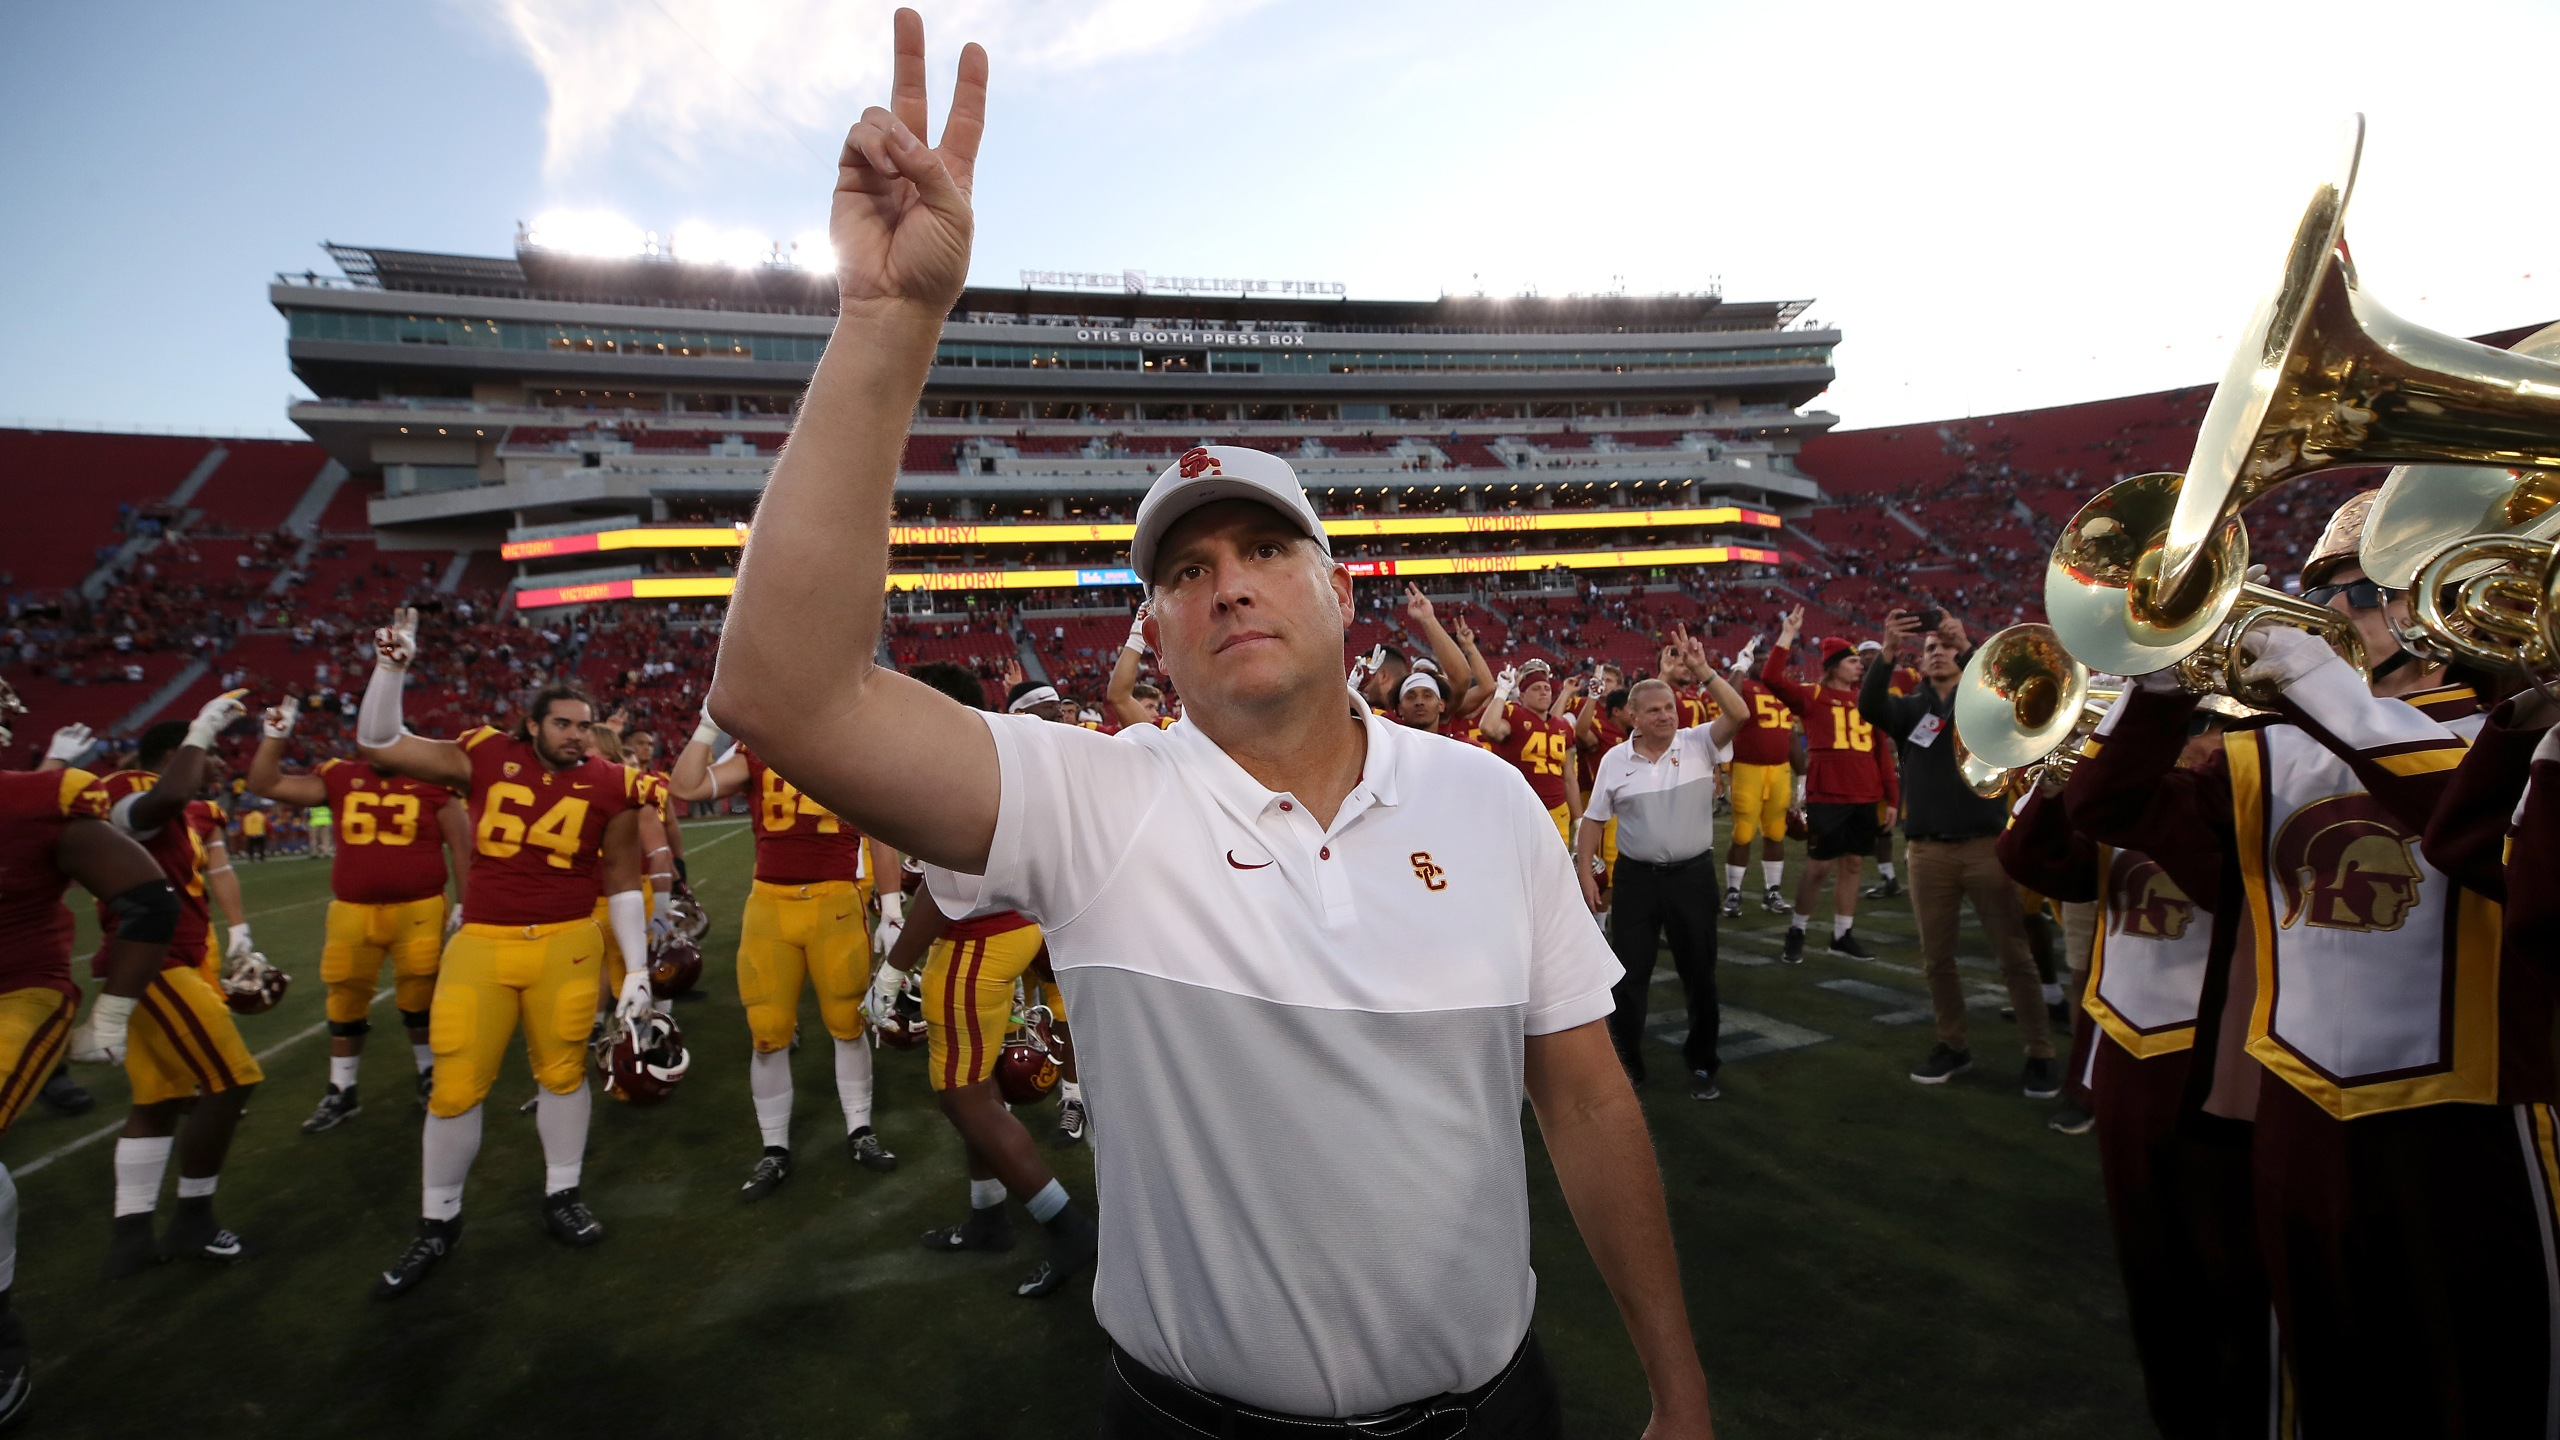 USC Trojans head coach Clay Helton waves to fans after defeating the UCLA Bruins 52-35 at Los Angeles Memorial Coliseum on Nov. 23, 2019. (Credit: Sean M. Haffey / Getty Images)